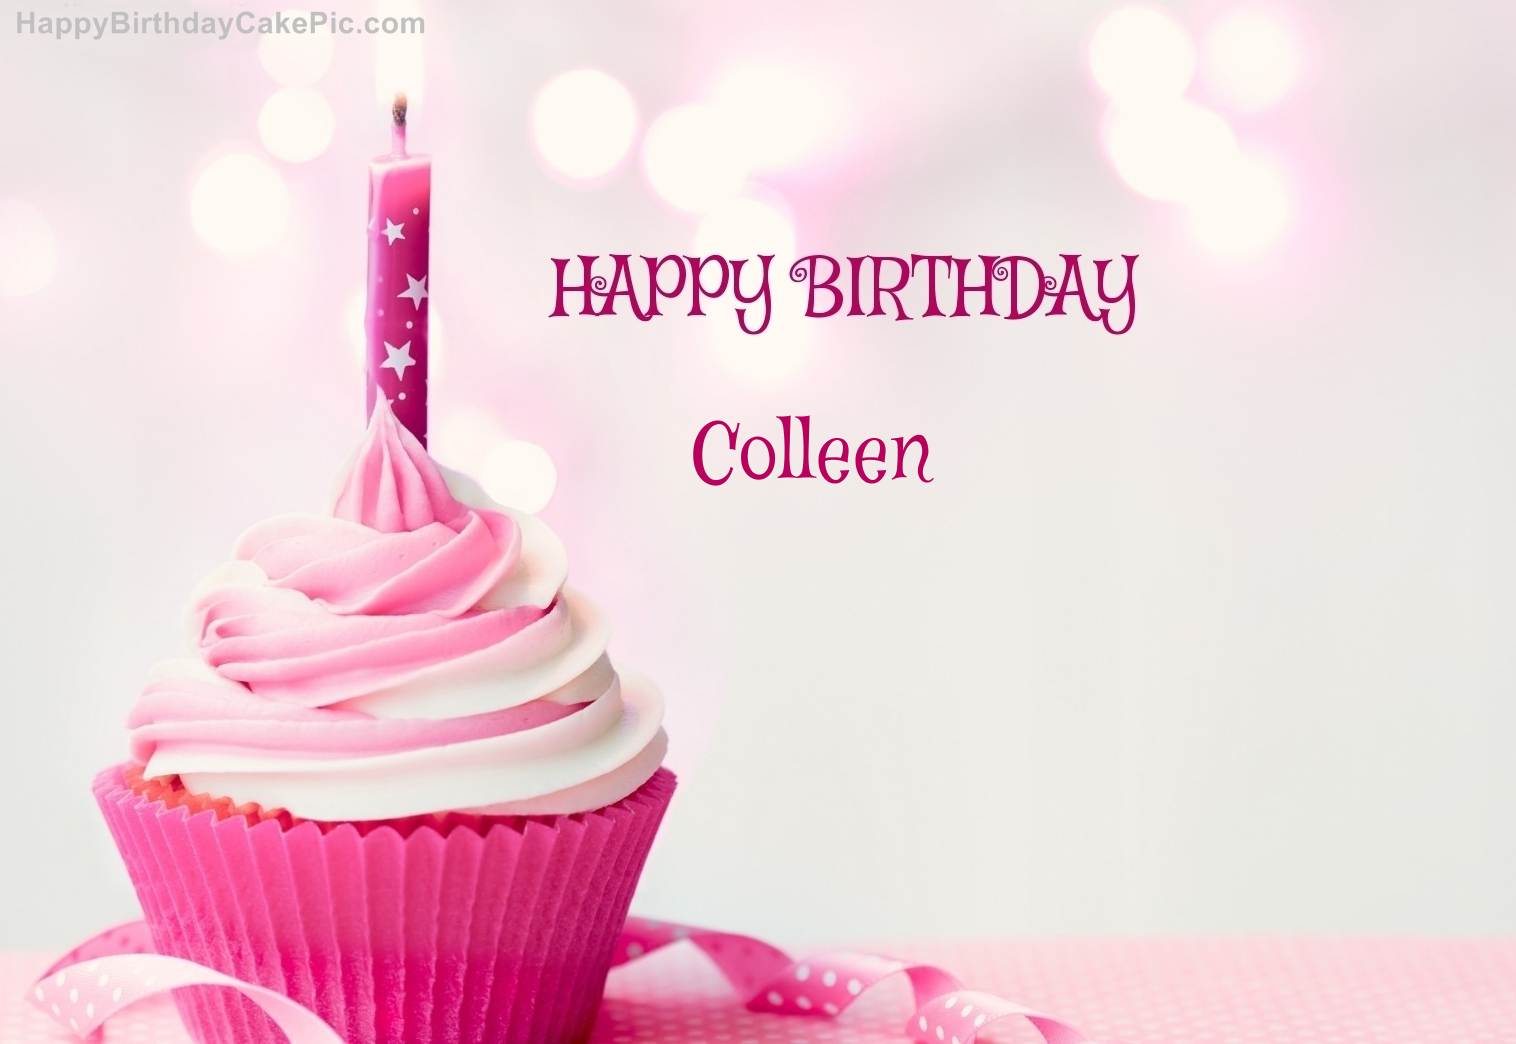 ️ Happy Birthday Cupcake Candle Pink Cake For Colleen